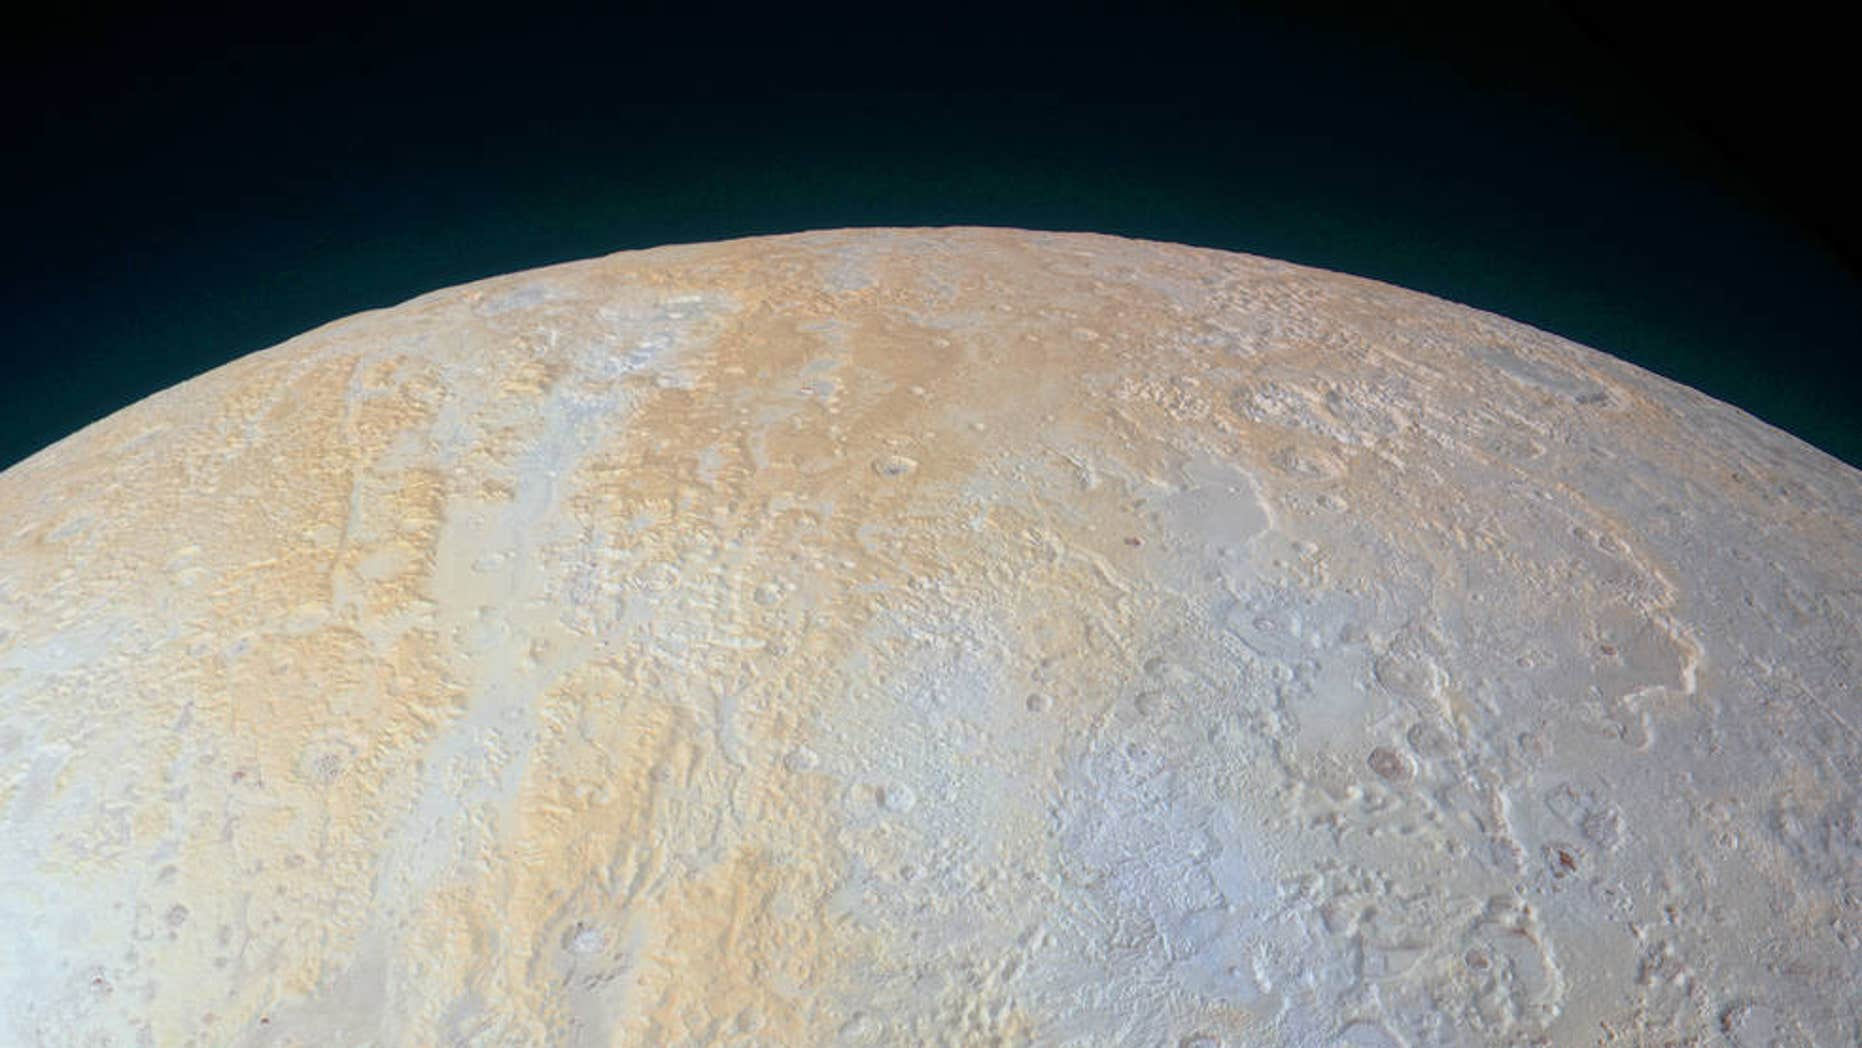 This ethereal scene captured by NASA's New Horizons spacecraft tells yet another story of Pluto's diversity of geological and compositional features—this time in an enhanced color image of the north polar area. (NASA)